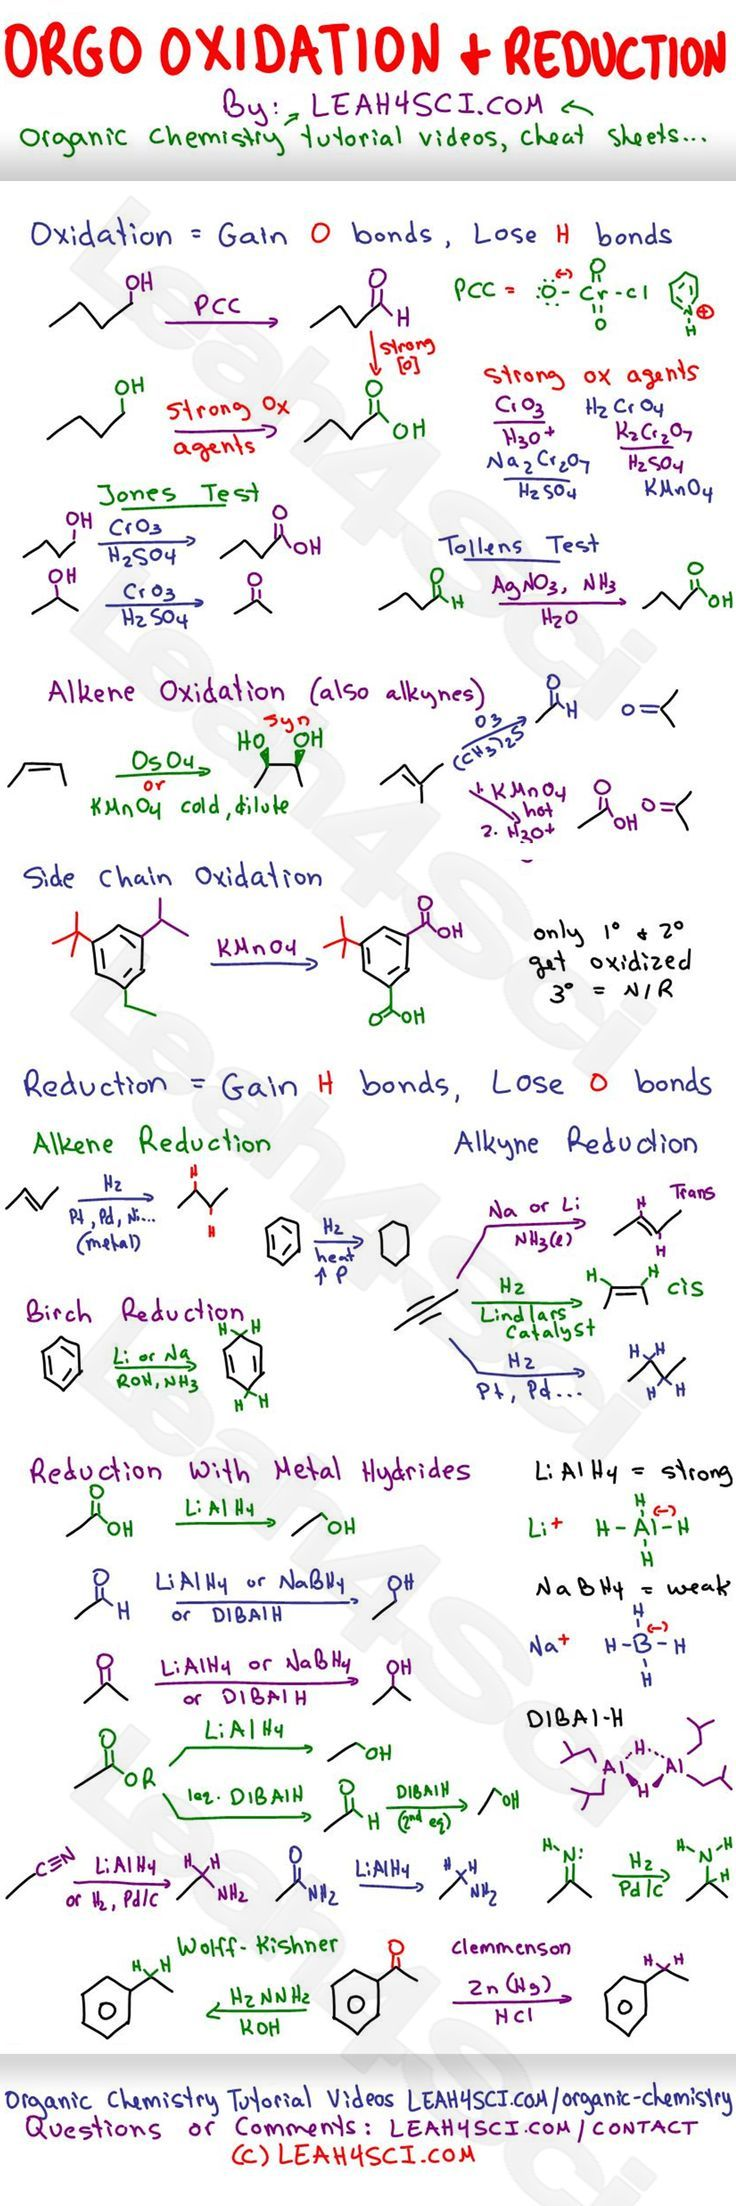 Orgo Oxidation And Reduction Reactions Study Guide Cheat Sheet By Leah4sci Jpg 1 069 3 205 Pixels Teaching Chemistry Organic Chemistry Study Organic Chemistry